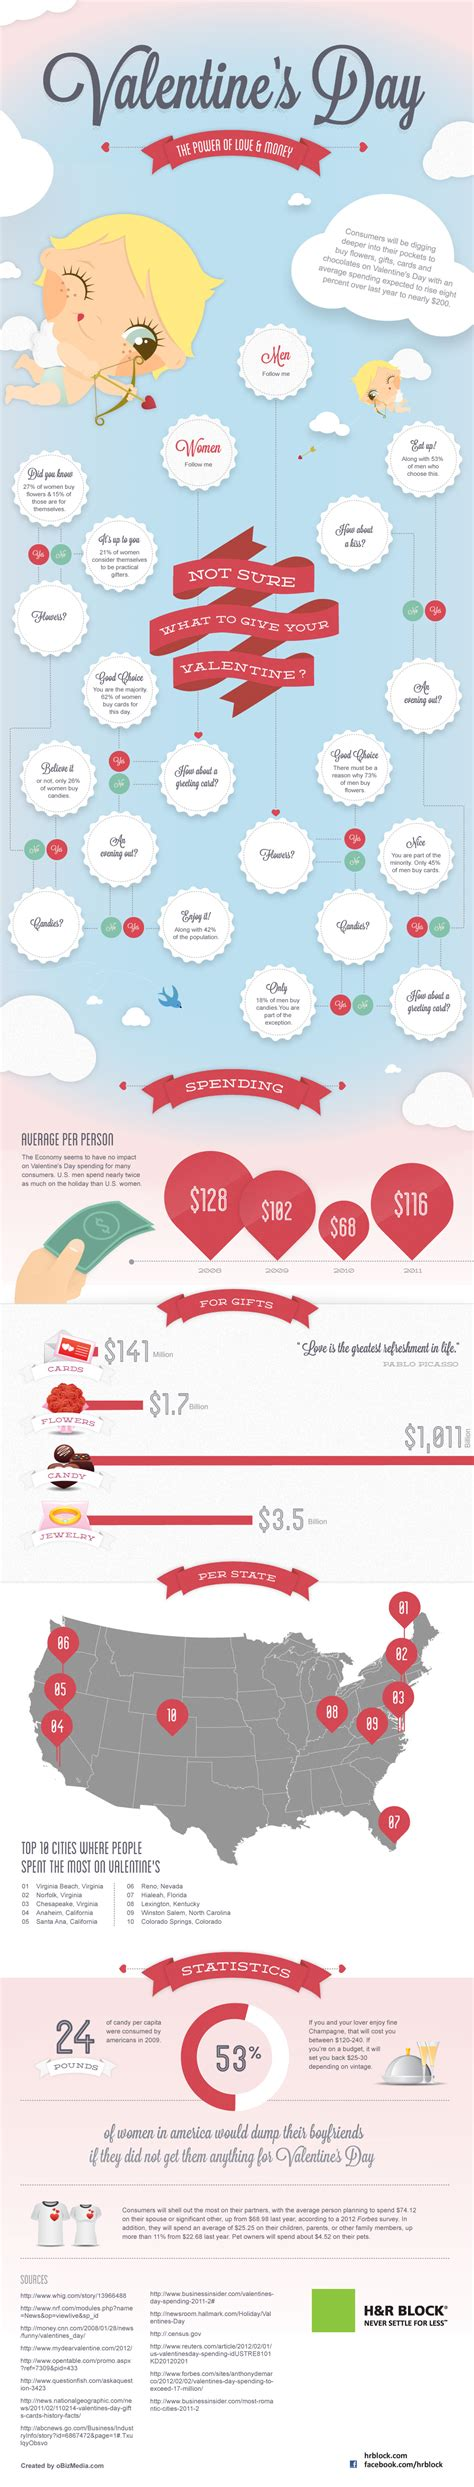 s day statistics infographic the surprising facts about s day